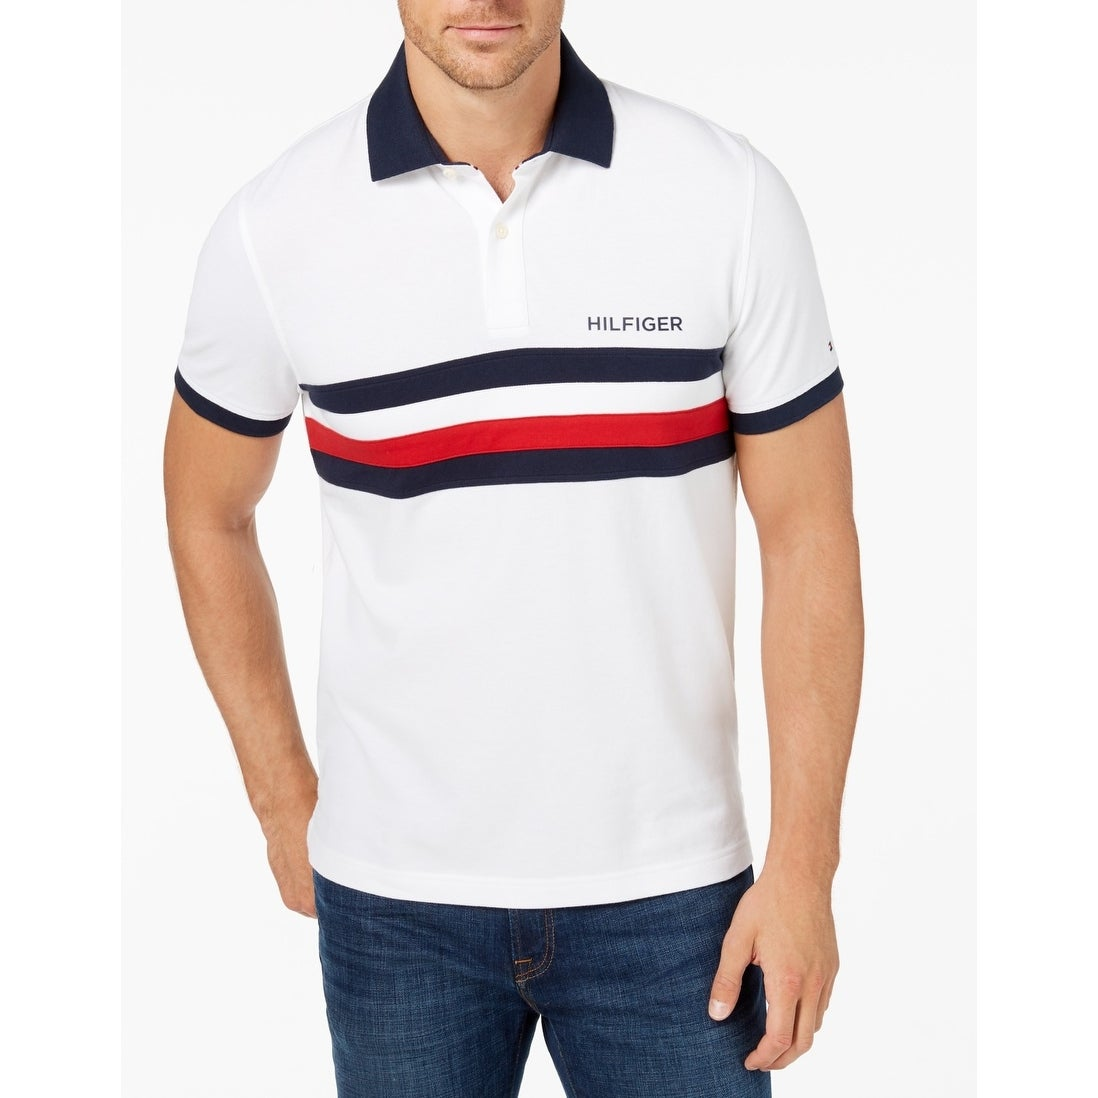 91dd0bd881 Tommy Hilfiger Shirts | Find Great Men's Clothing Deals Shopping at  Overstock